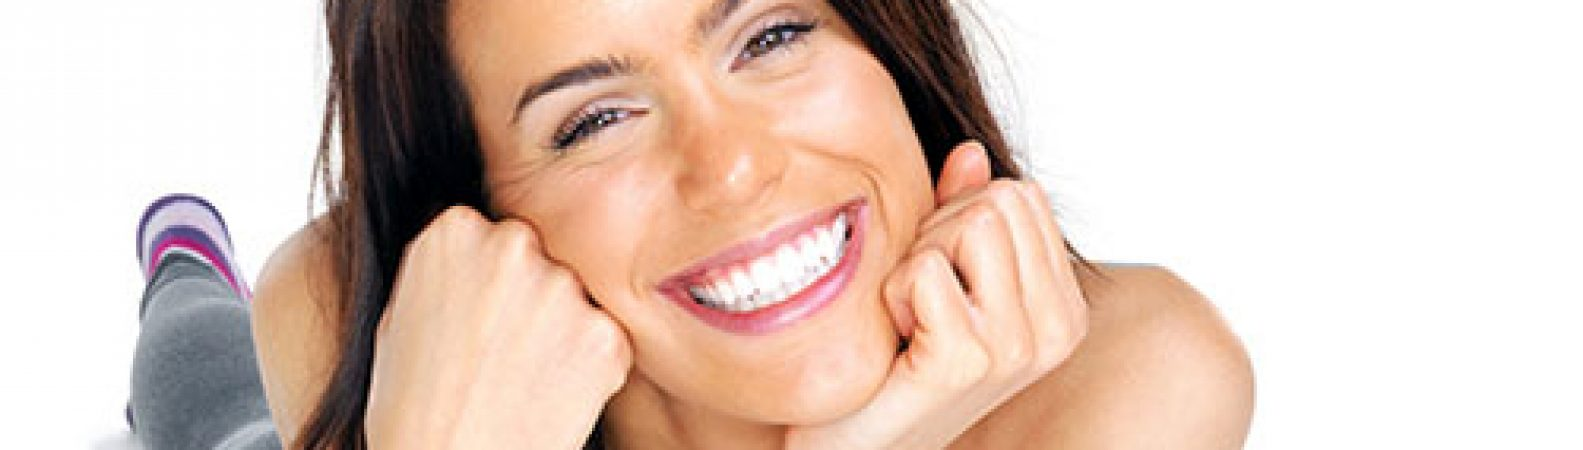 Dental Bonding Can Give You A Better Smile (video)